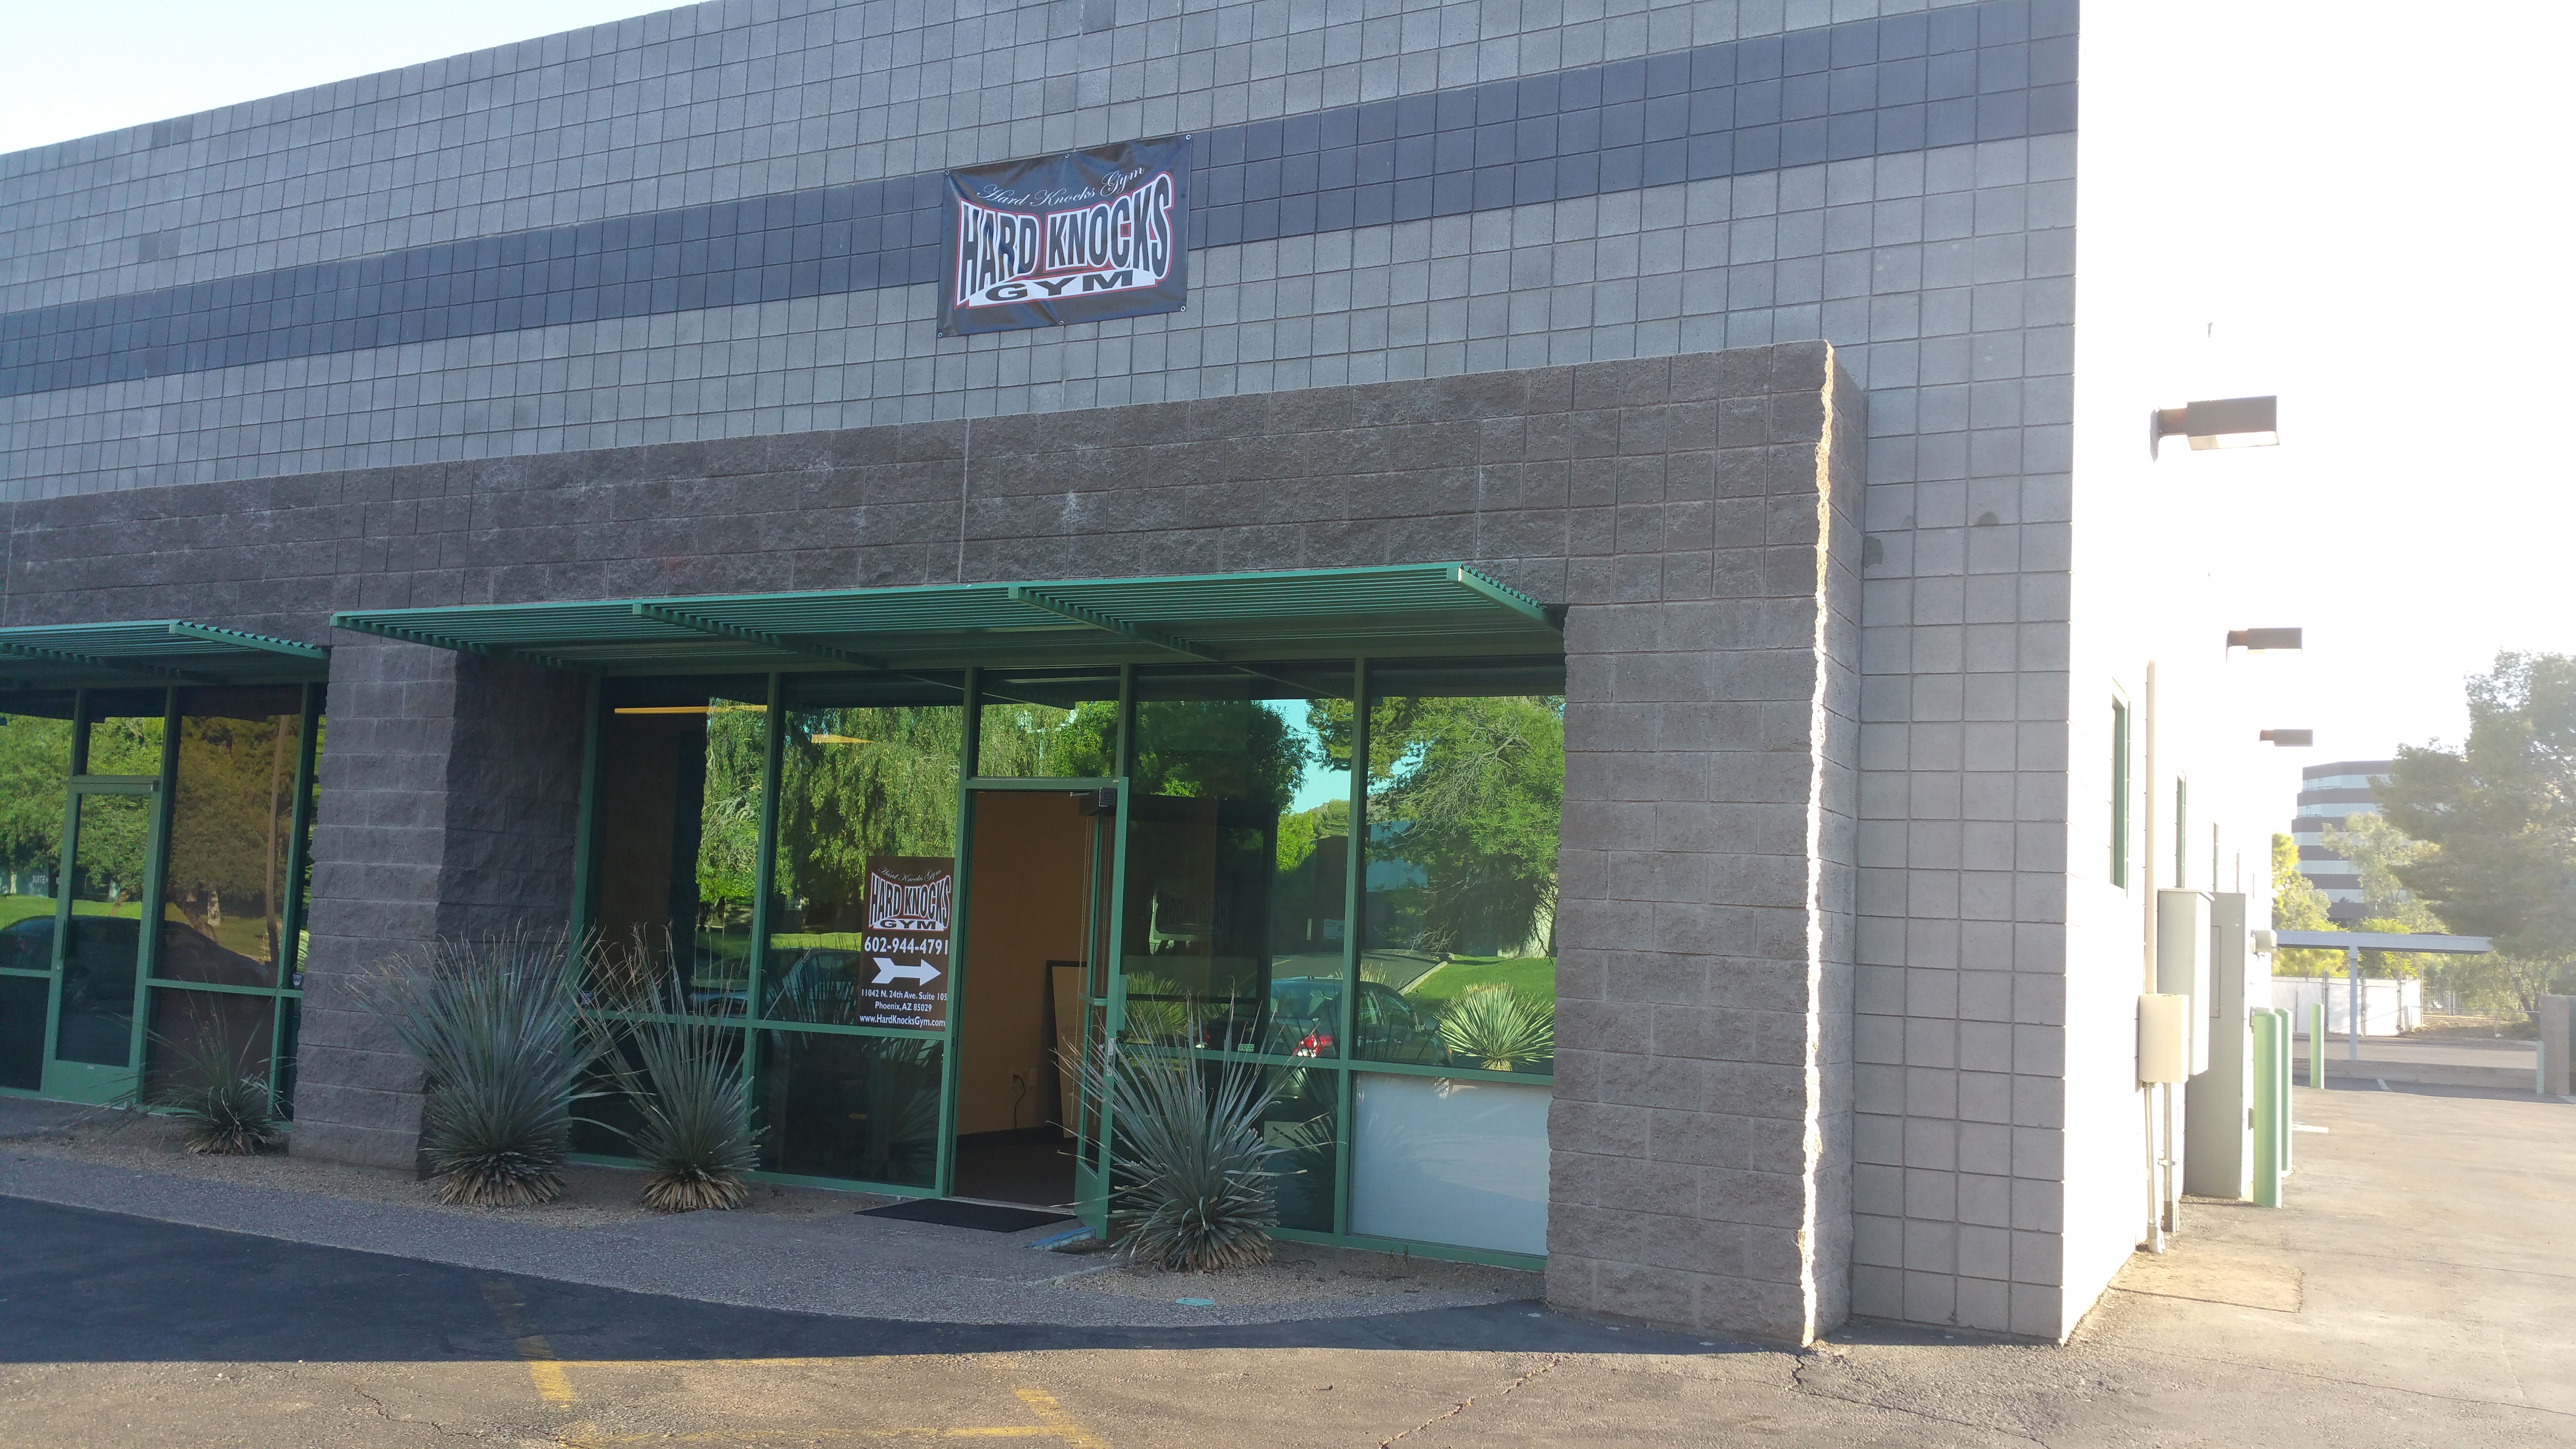 Our building at 11042 N. 24th Ave. suite 105 Phoenix, AZ 85029